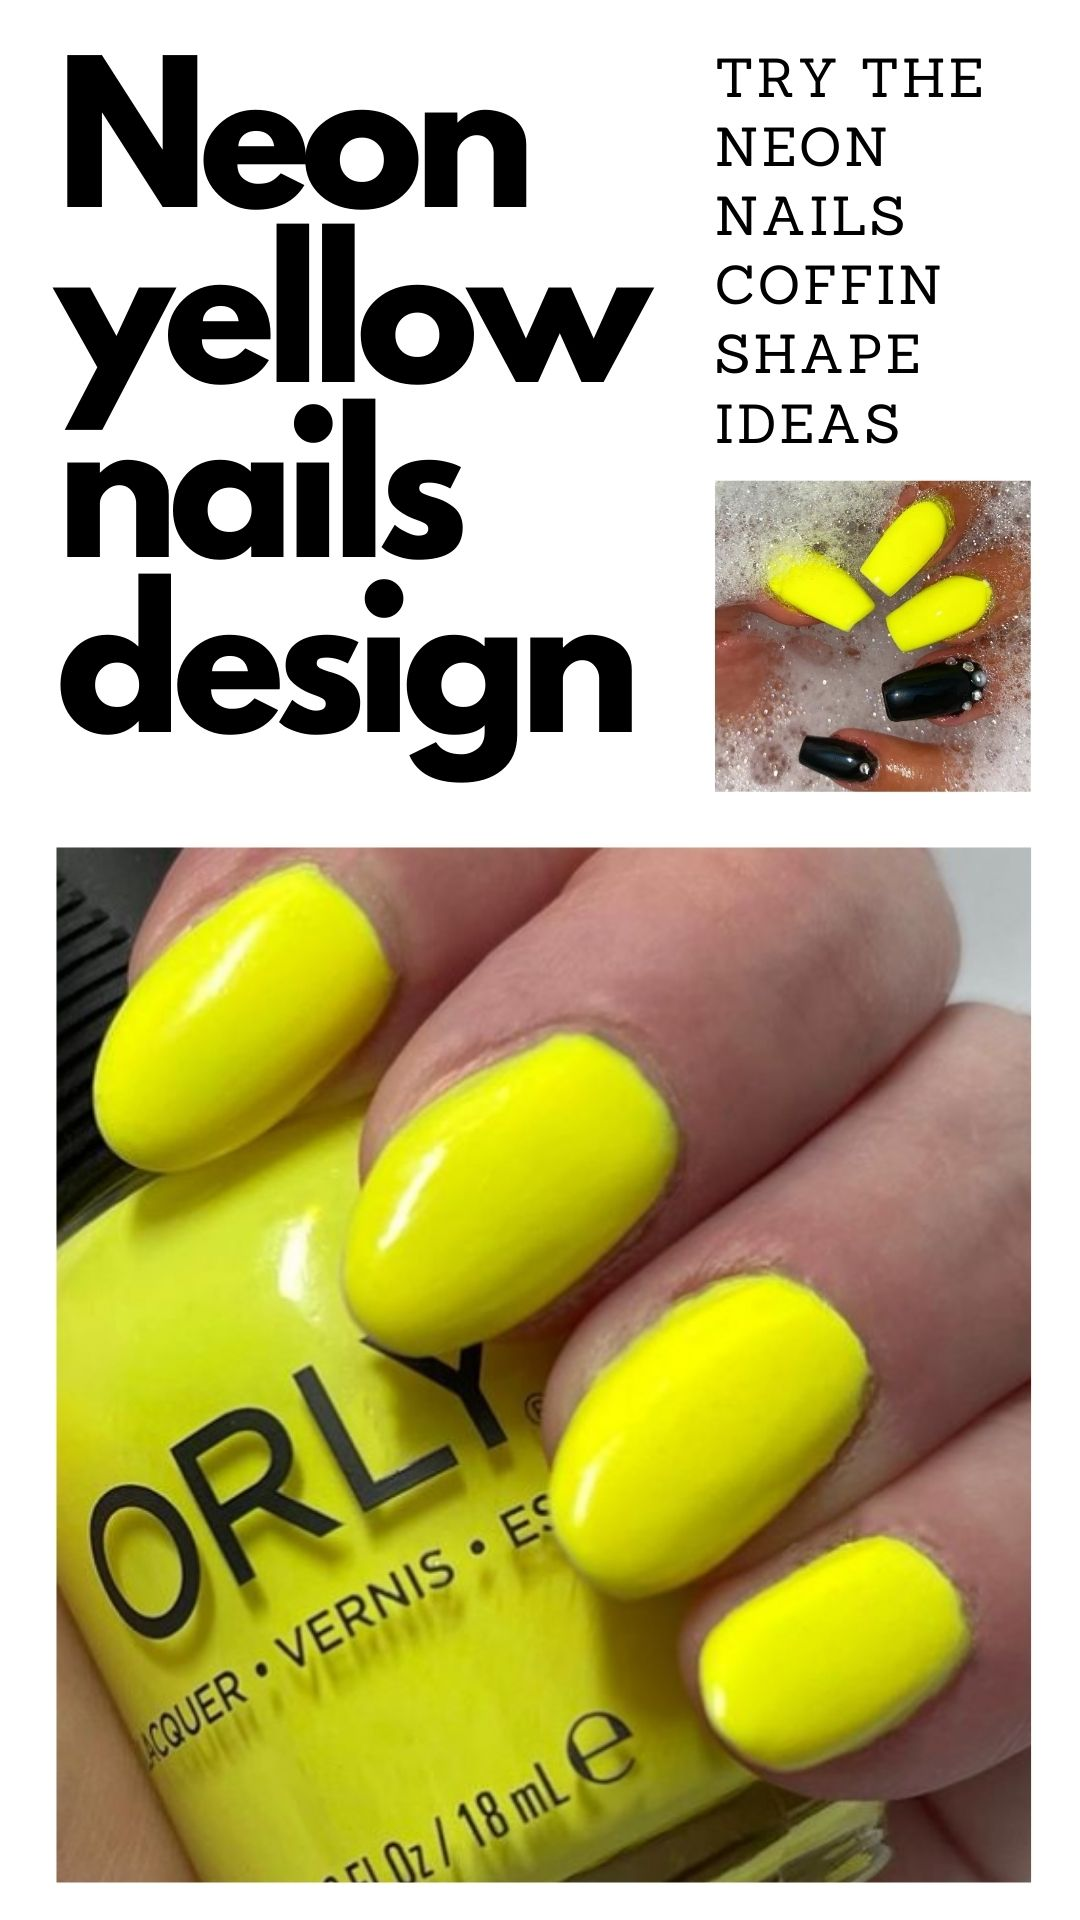 Neon yellow nails   Neon Yellow Nails and Ideas for falls 2021